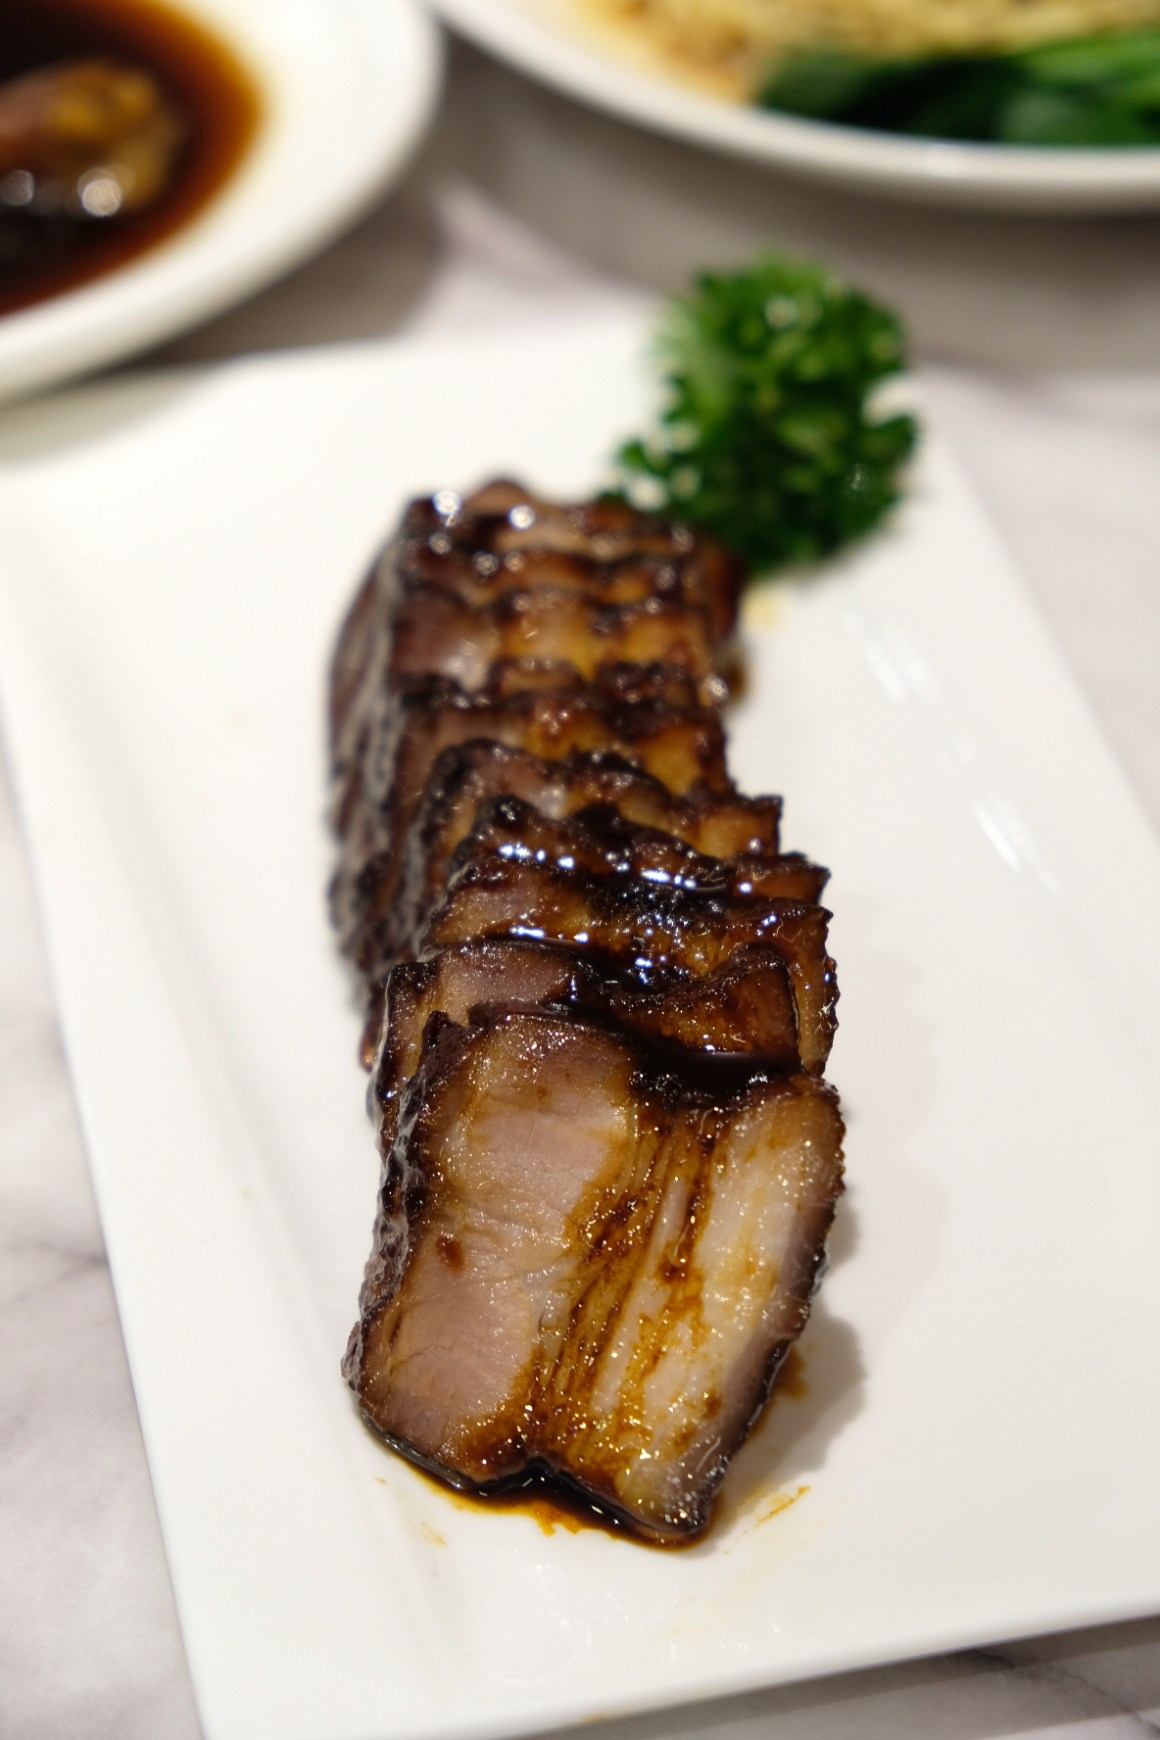 Ho Fook Hei Soy Sauce Chicken By Joyden At Great World City - Honey-Glazed Black Barbeque Pork Belly ($13)